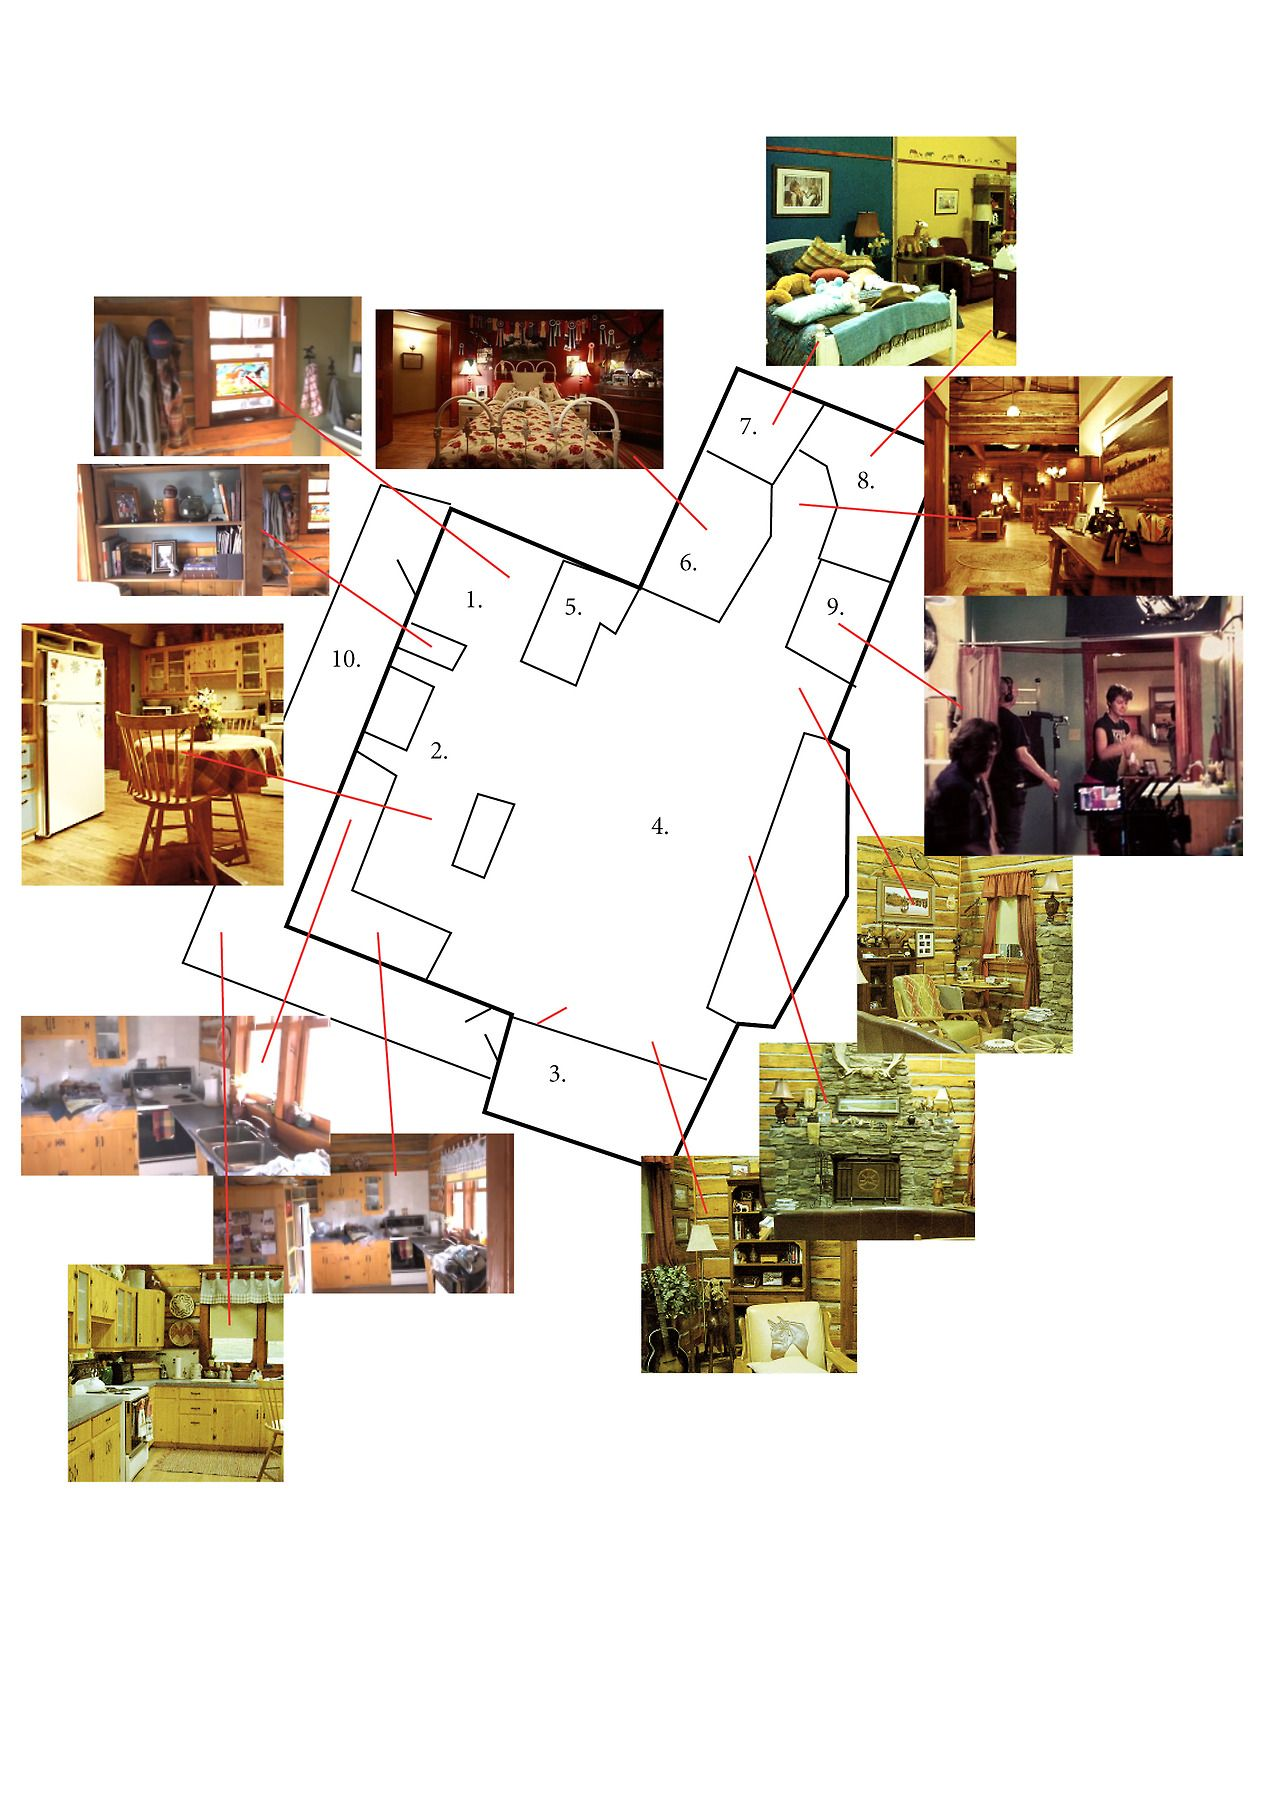 Assumed layout of the Heartland House: 1. The hallway 2. The kitchen ...